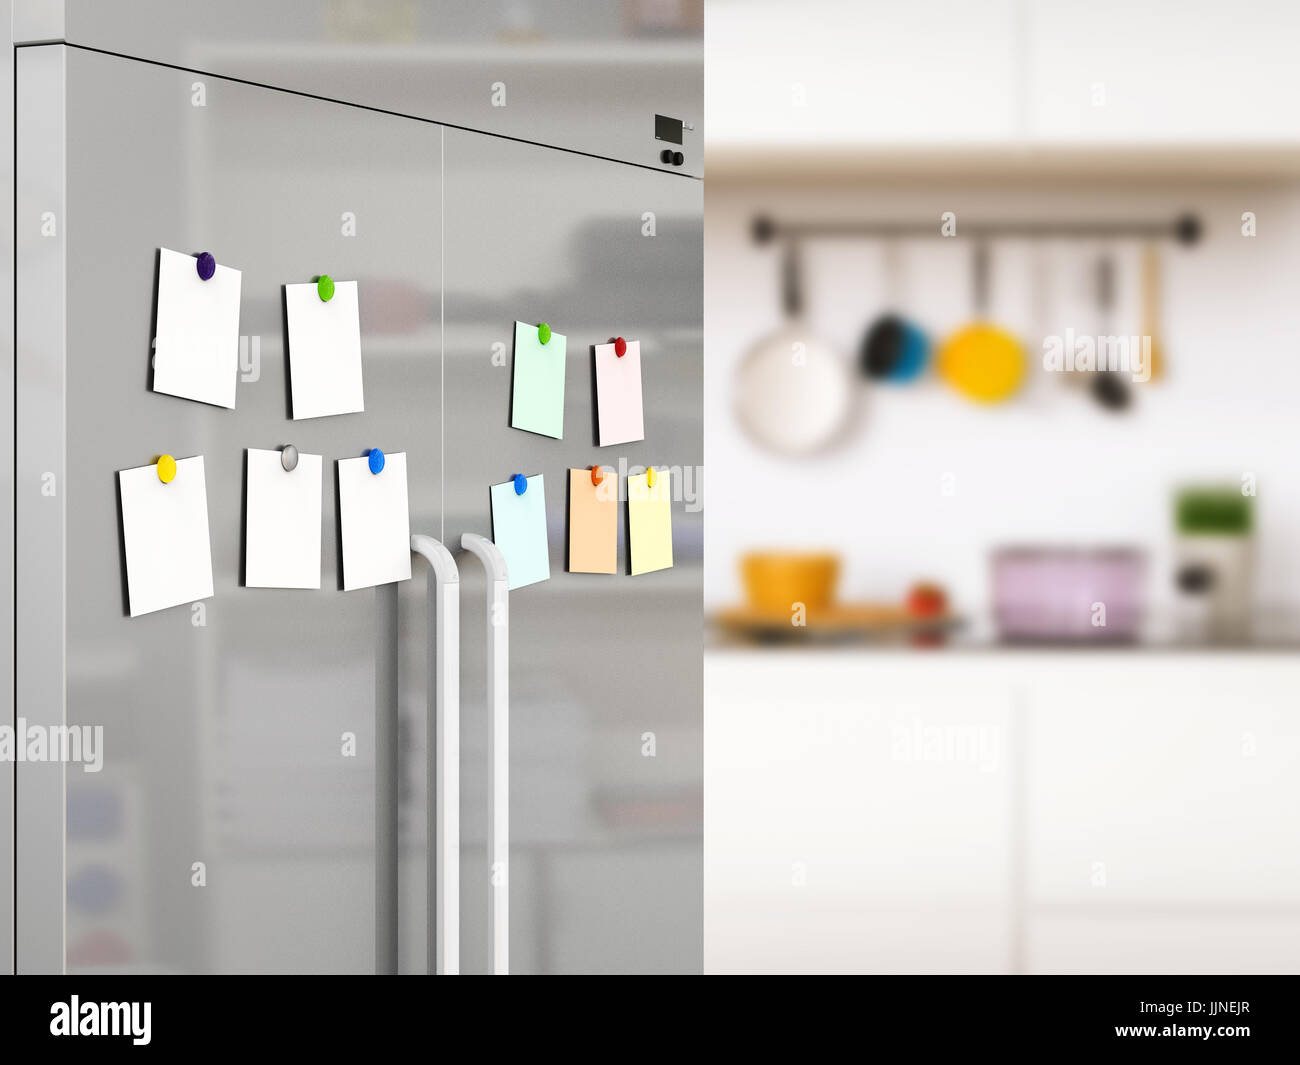 3d rendering empty notes with fridge magnets on refrigerator door & 3d rendering empty notes with fridge magnets on refrigerator door ...